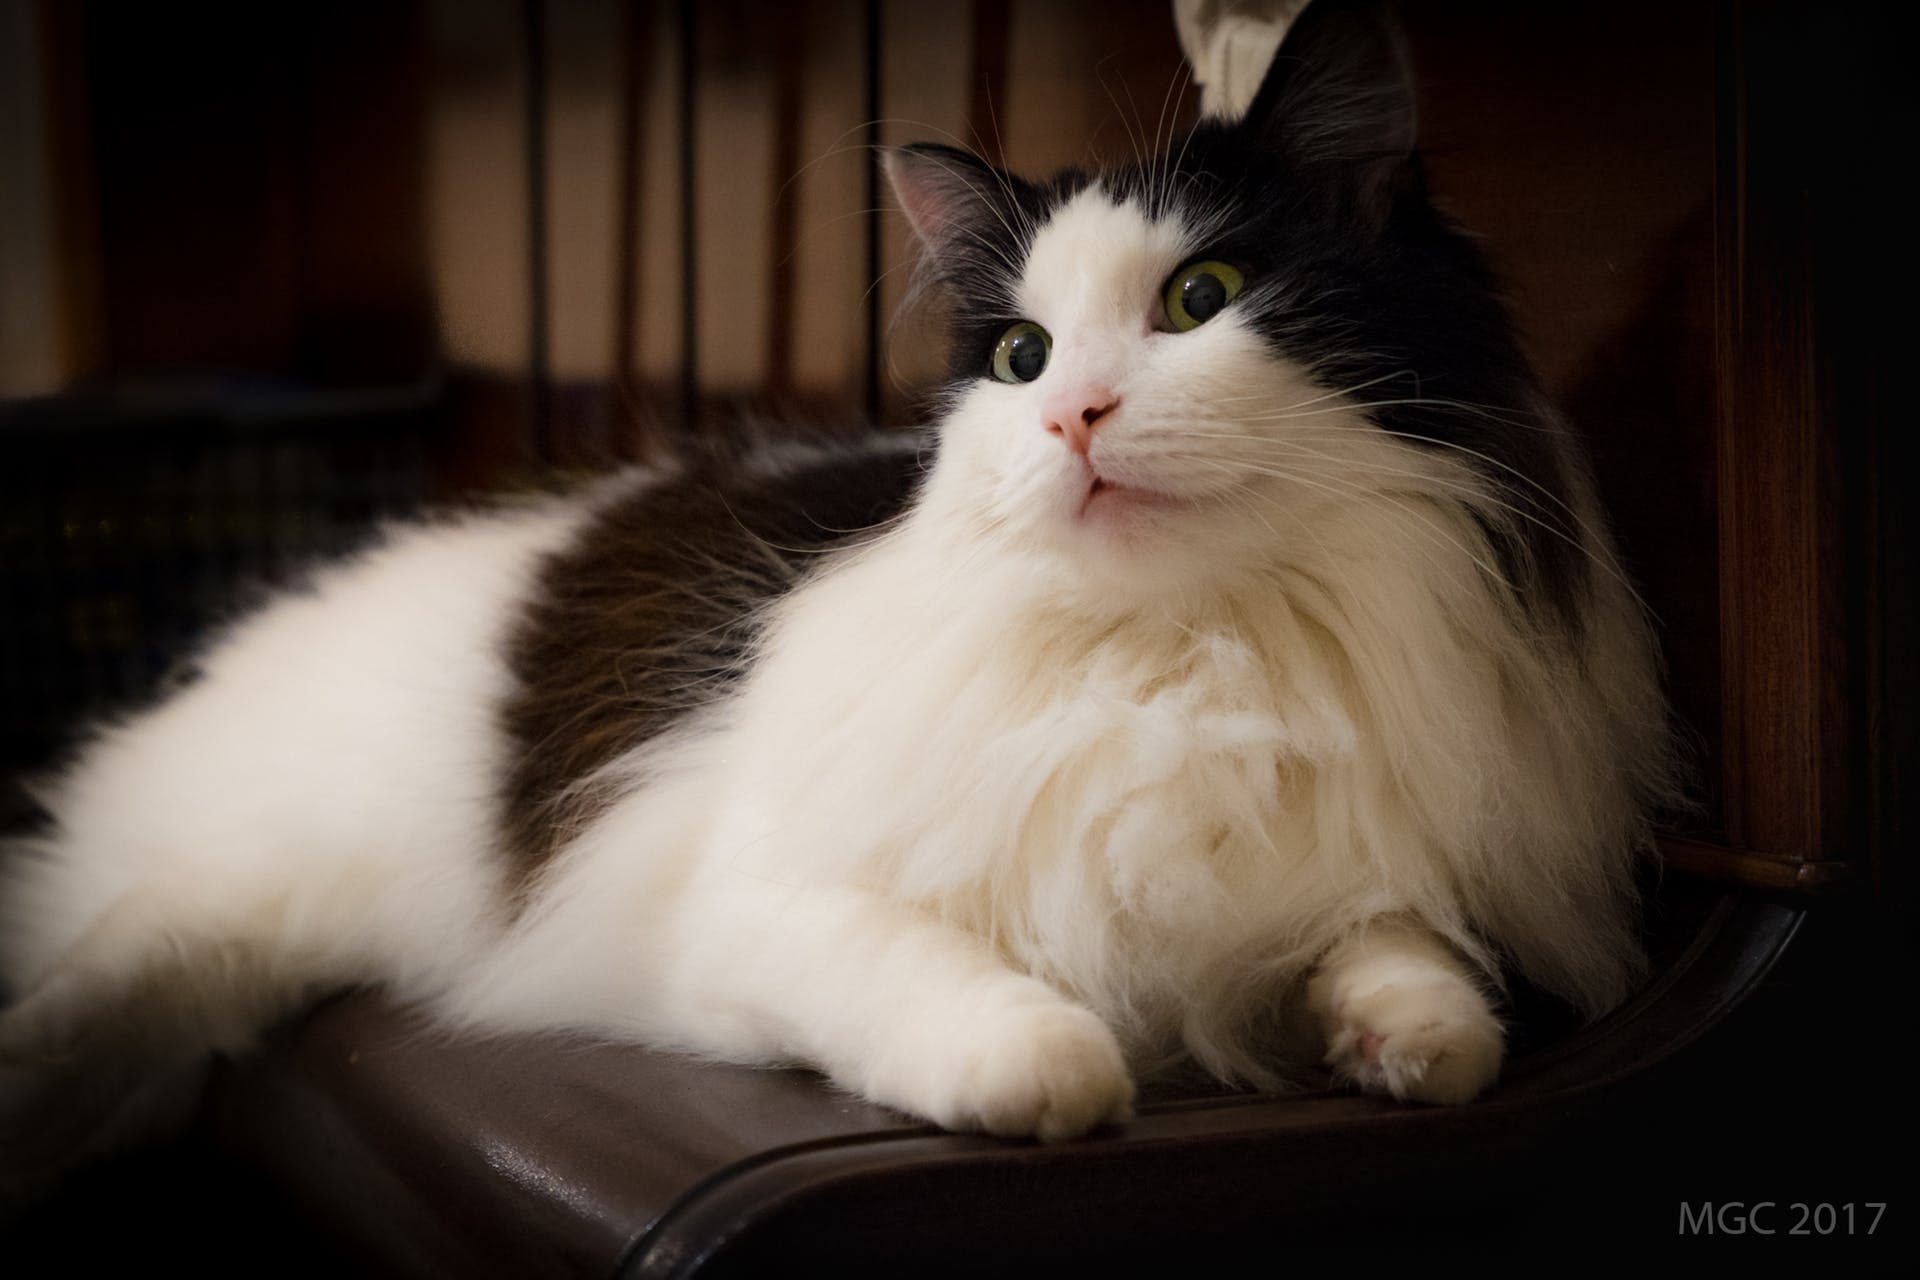 cat pink nose patches cute green eyes fluffy